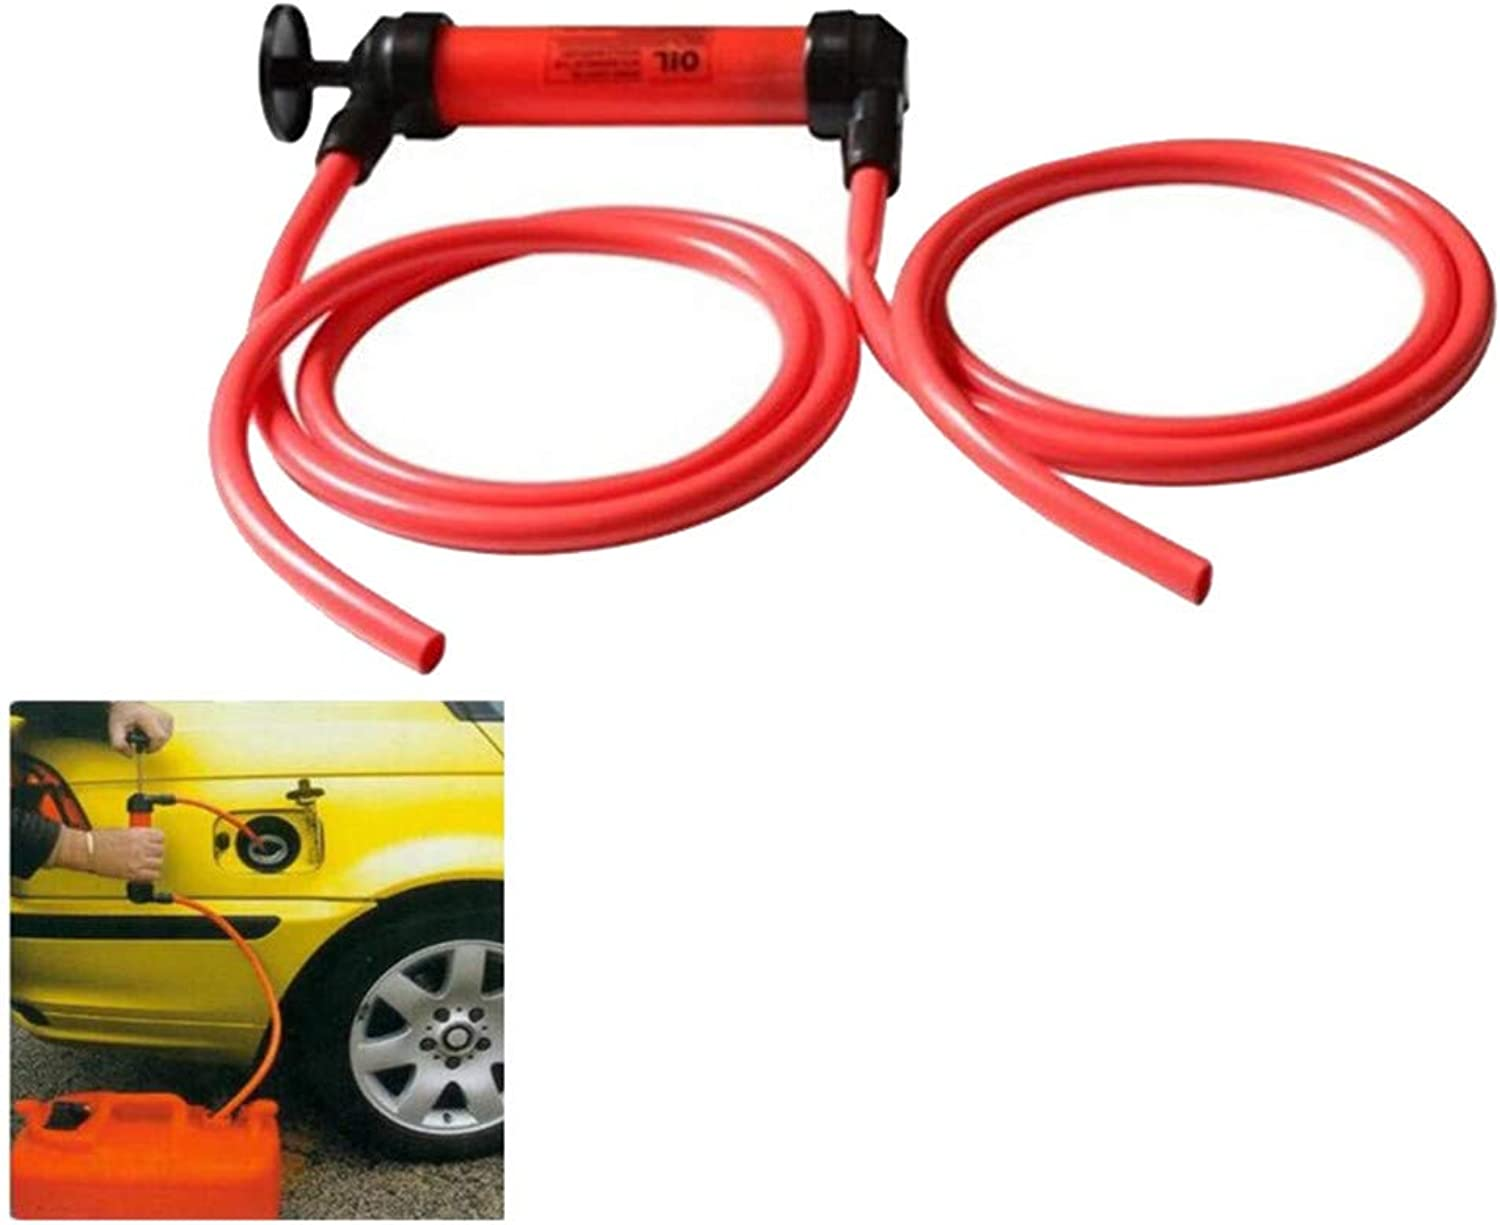 Hand Siphon Transfer Pump,Multi Purpose Syphon Pump, for Fuel Oil Fluid Other Fluids Hand Pump Emergency Pump Transfer